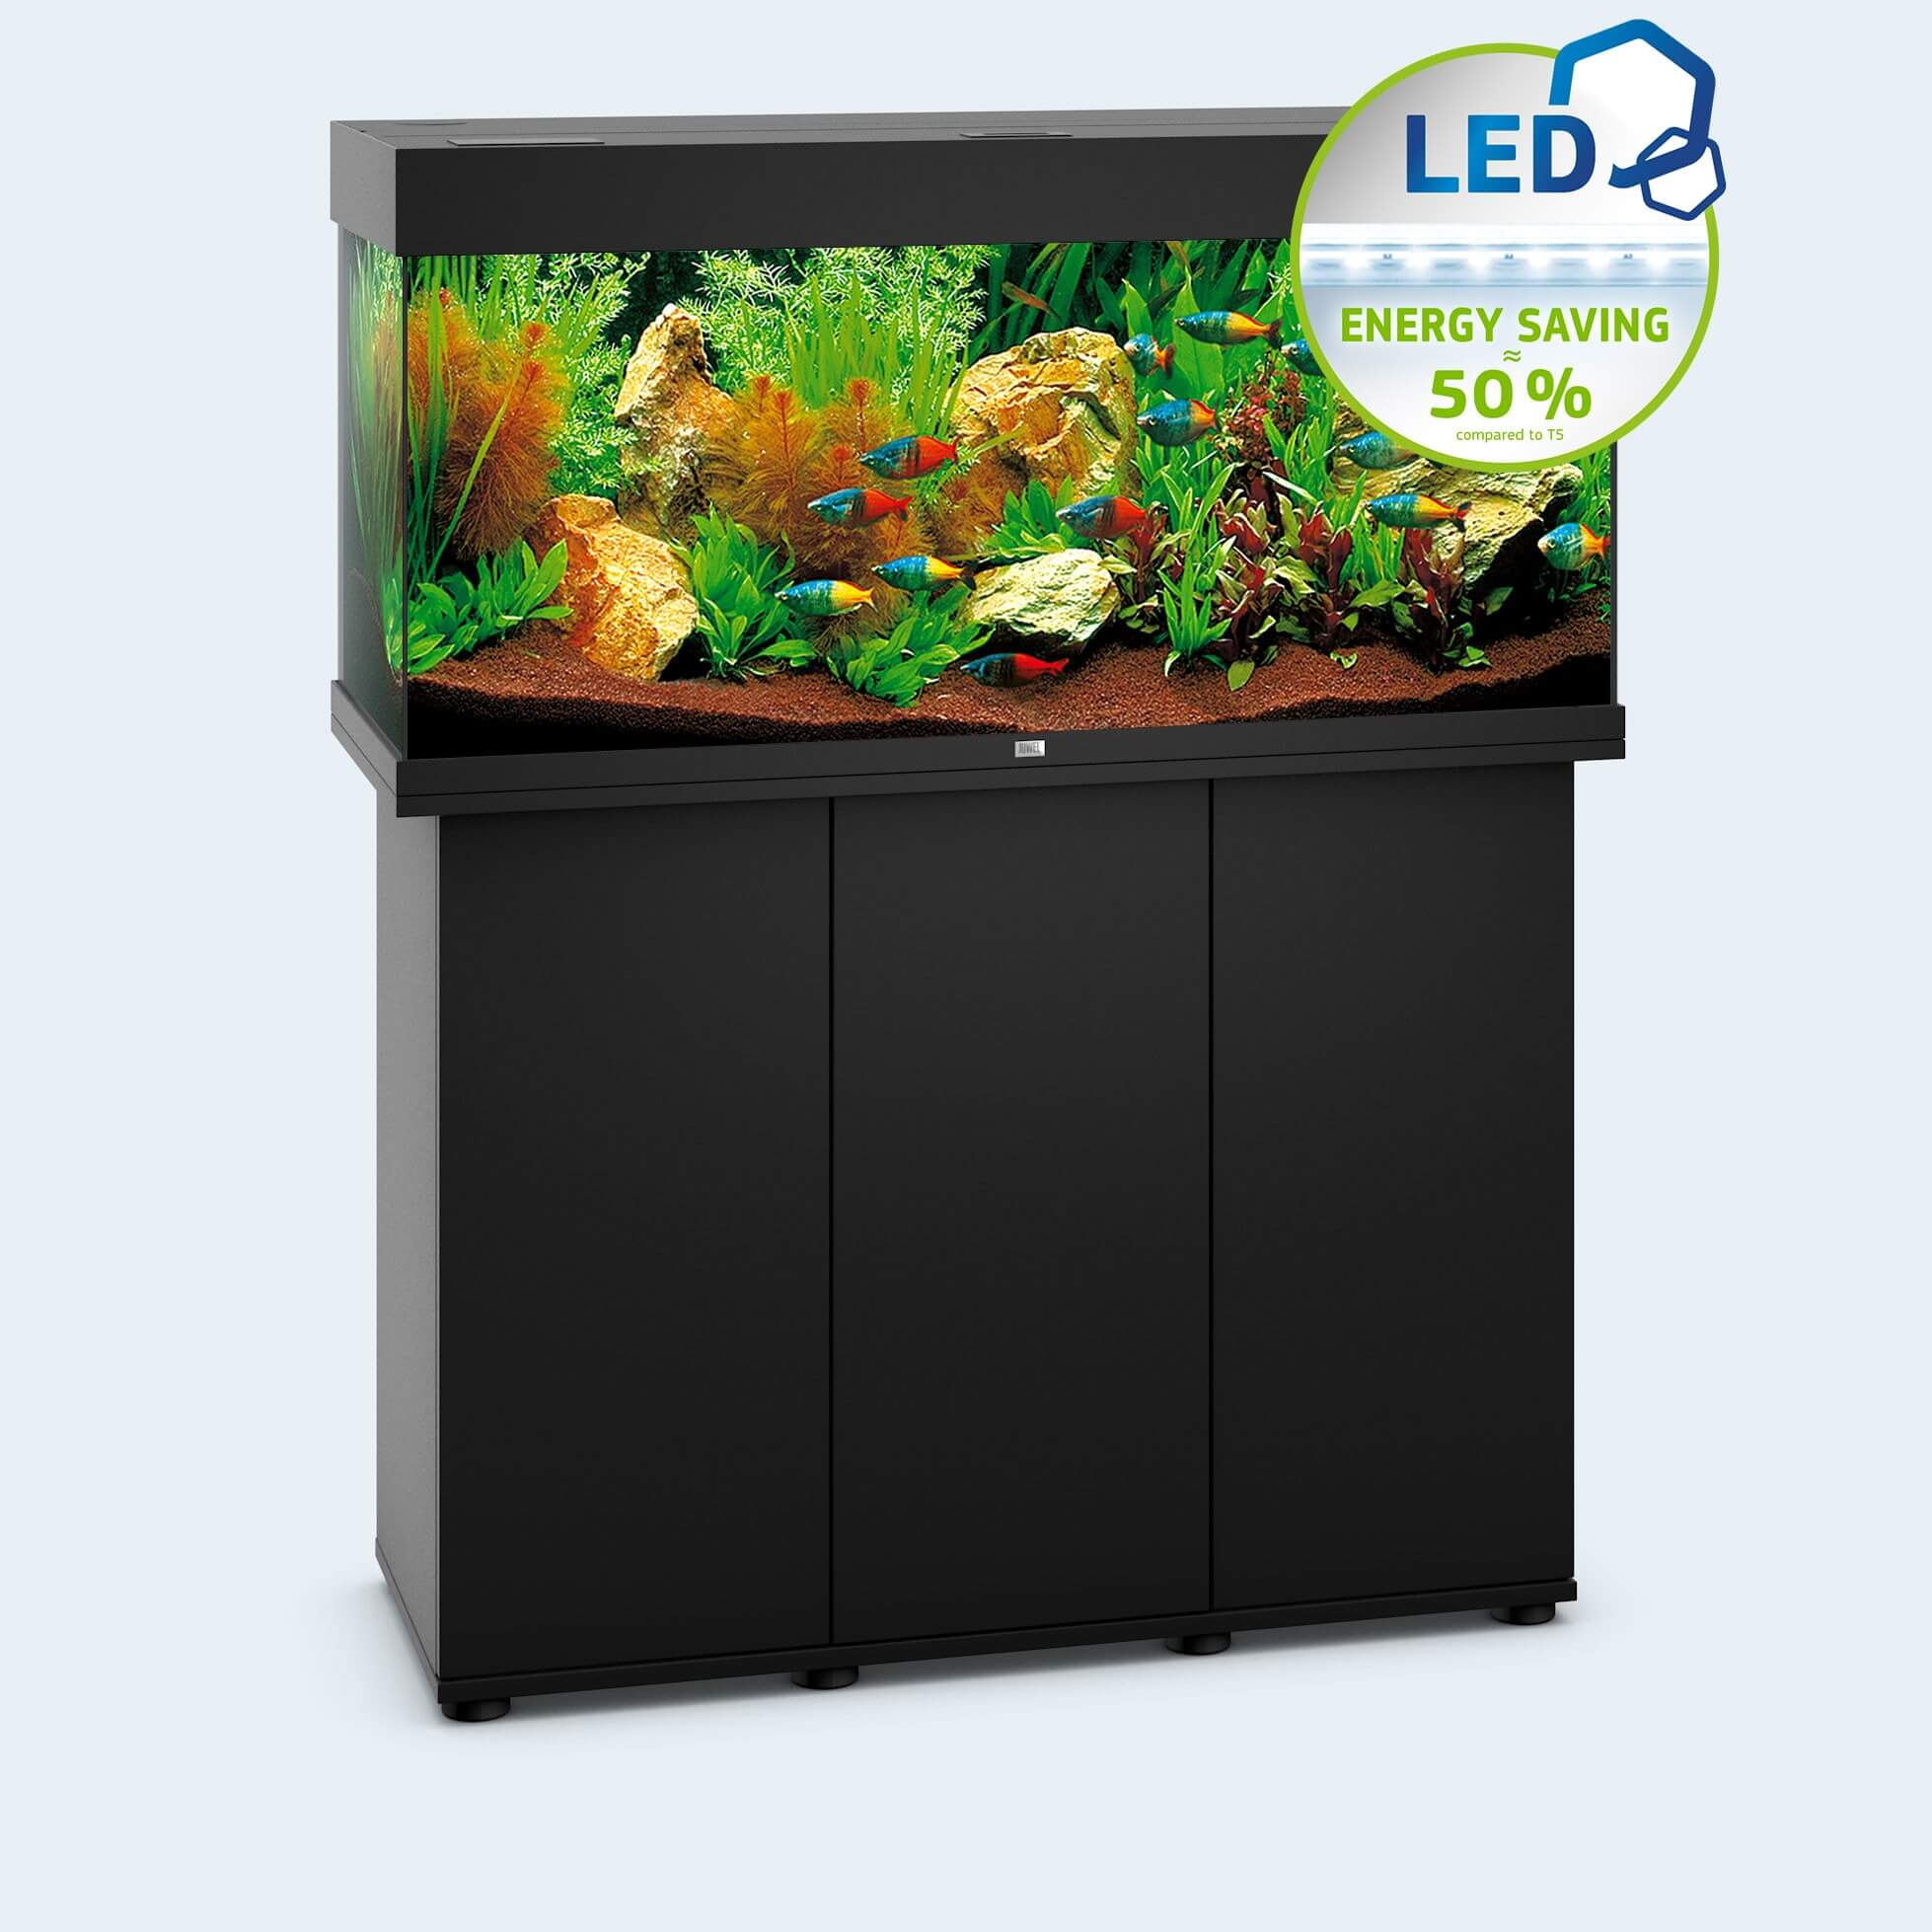 aquarium-juwel-rio-180-led-noir Frais De Aquarium Table Basse Pas Cher